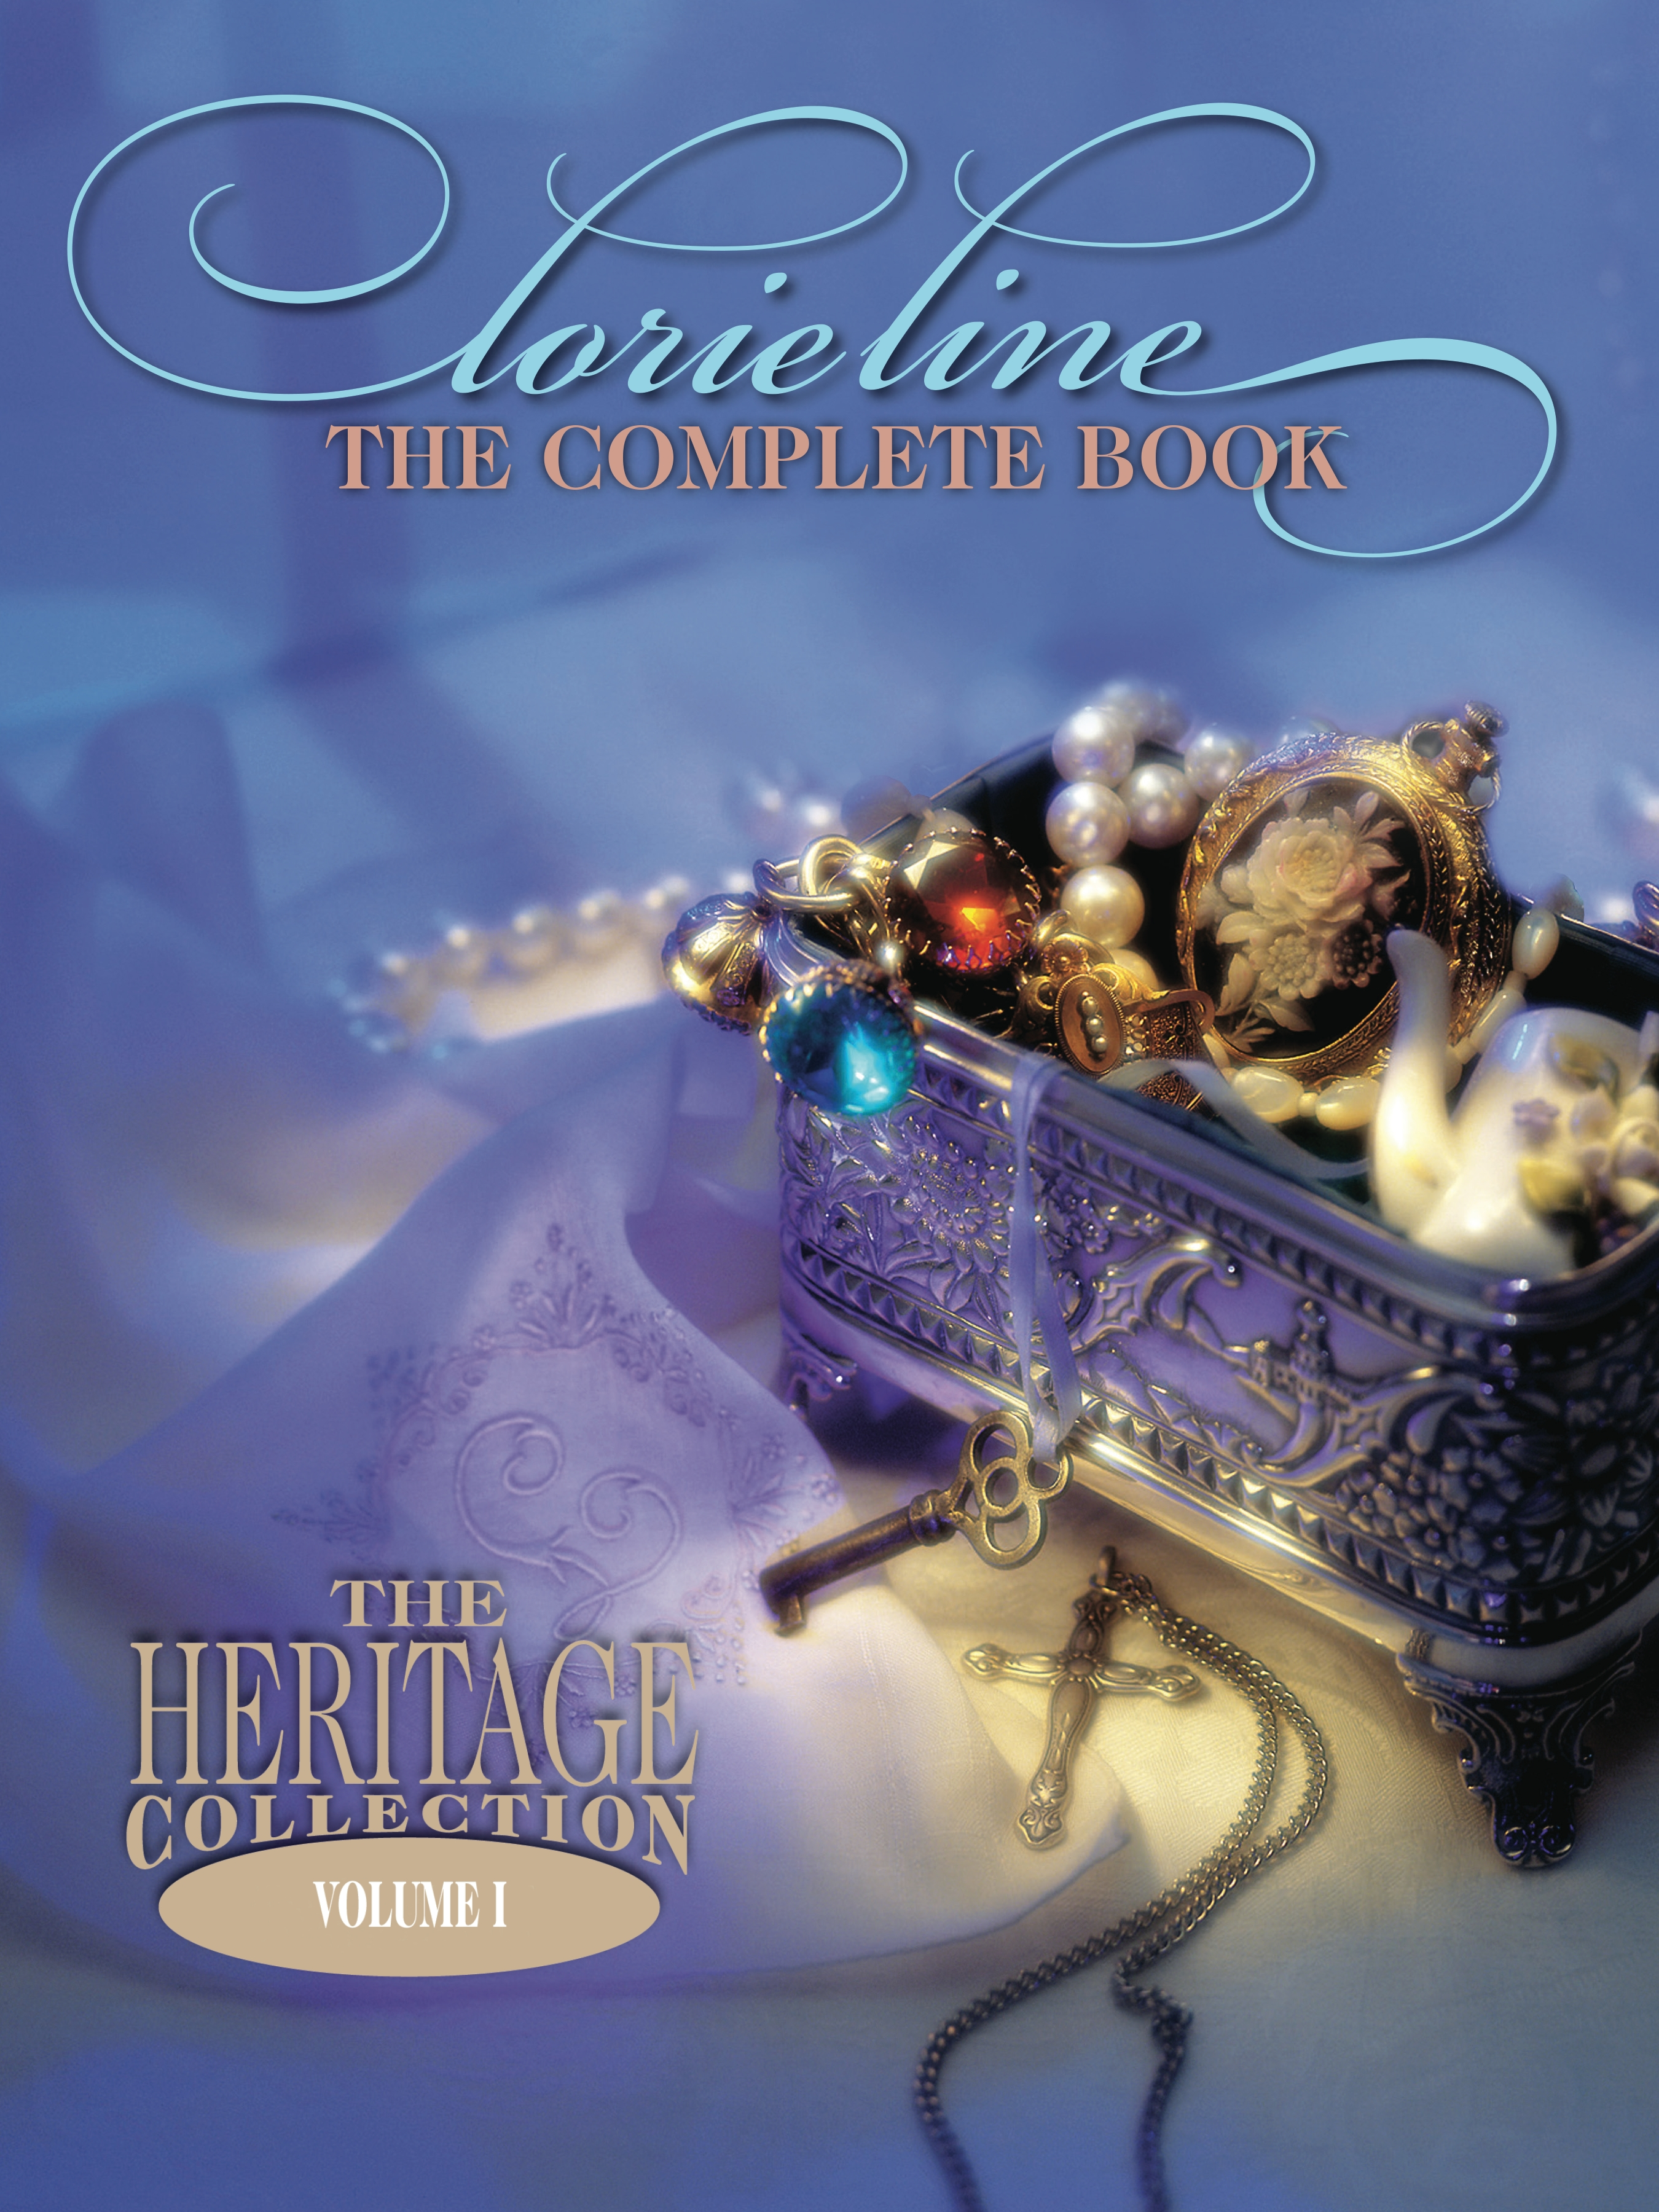 The Complete Book: The Heritage Collection, Vol. 1